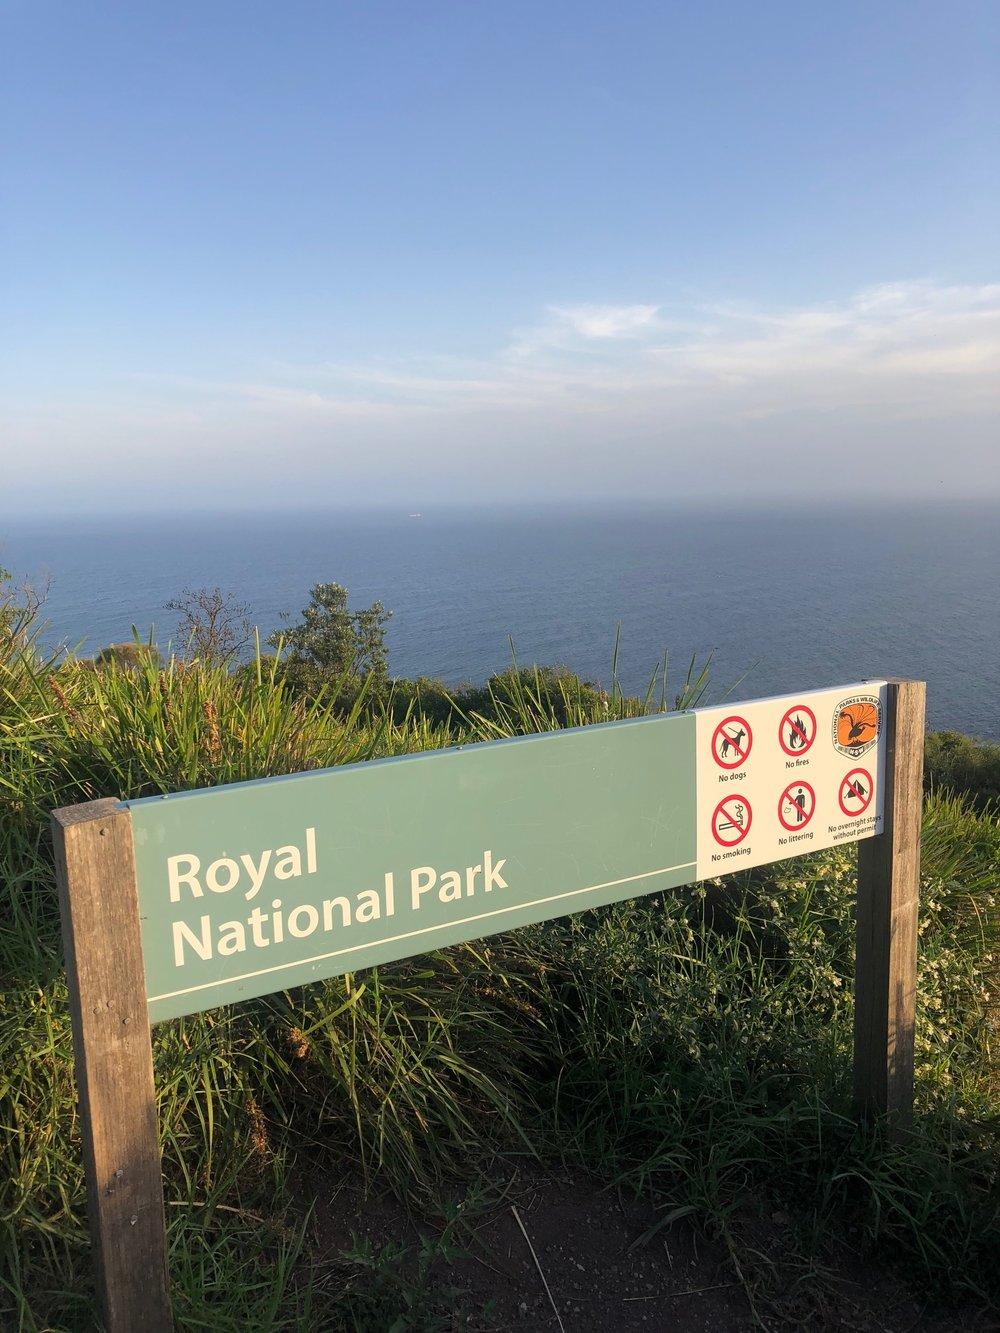 Royal National Park at Otford: depending on how you hike the Coast Track, this is either the beginning or the end. For me, it was the end. I made it!